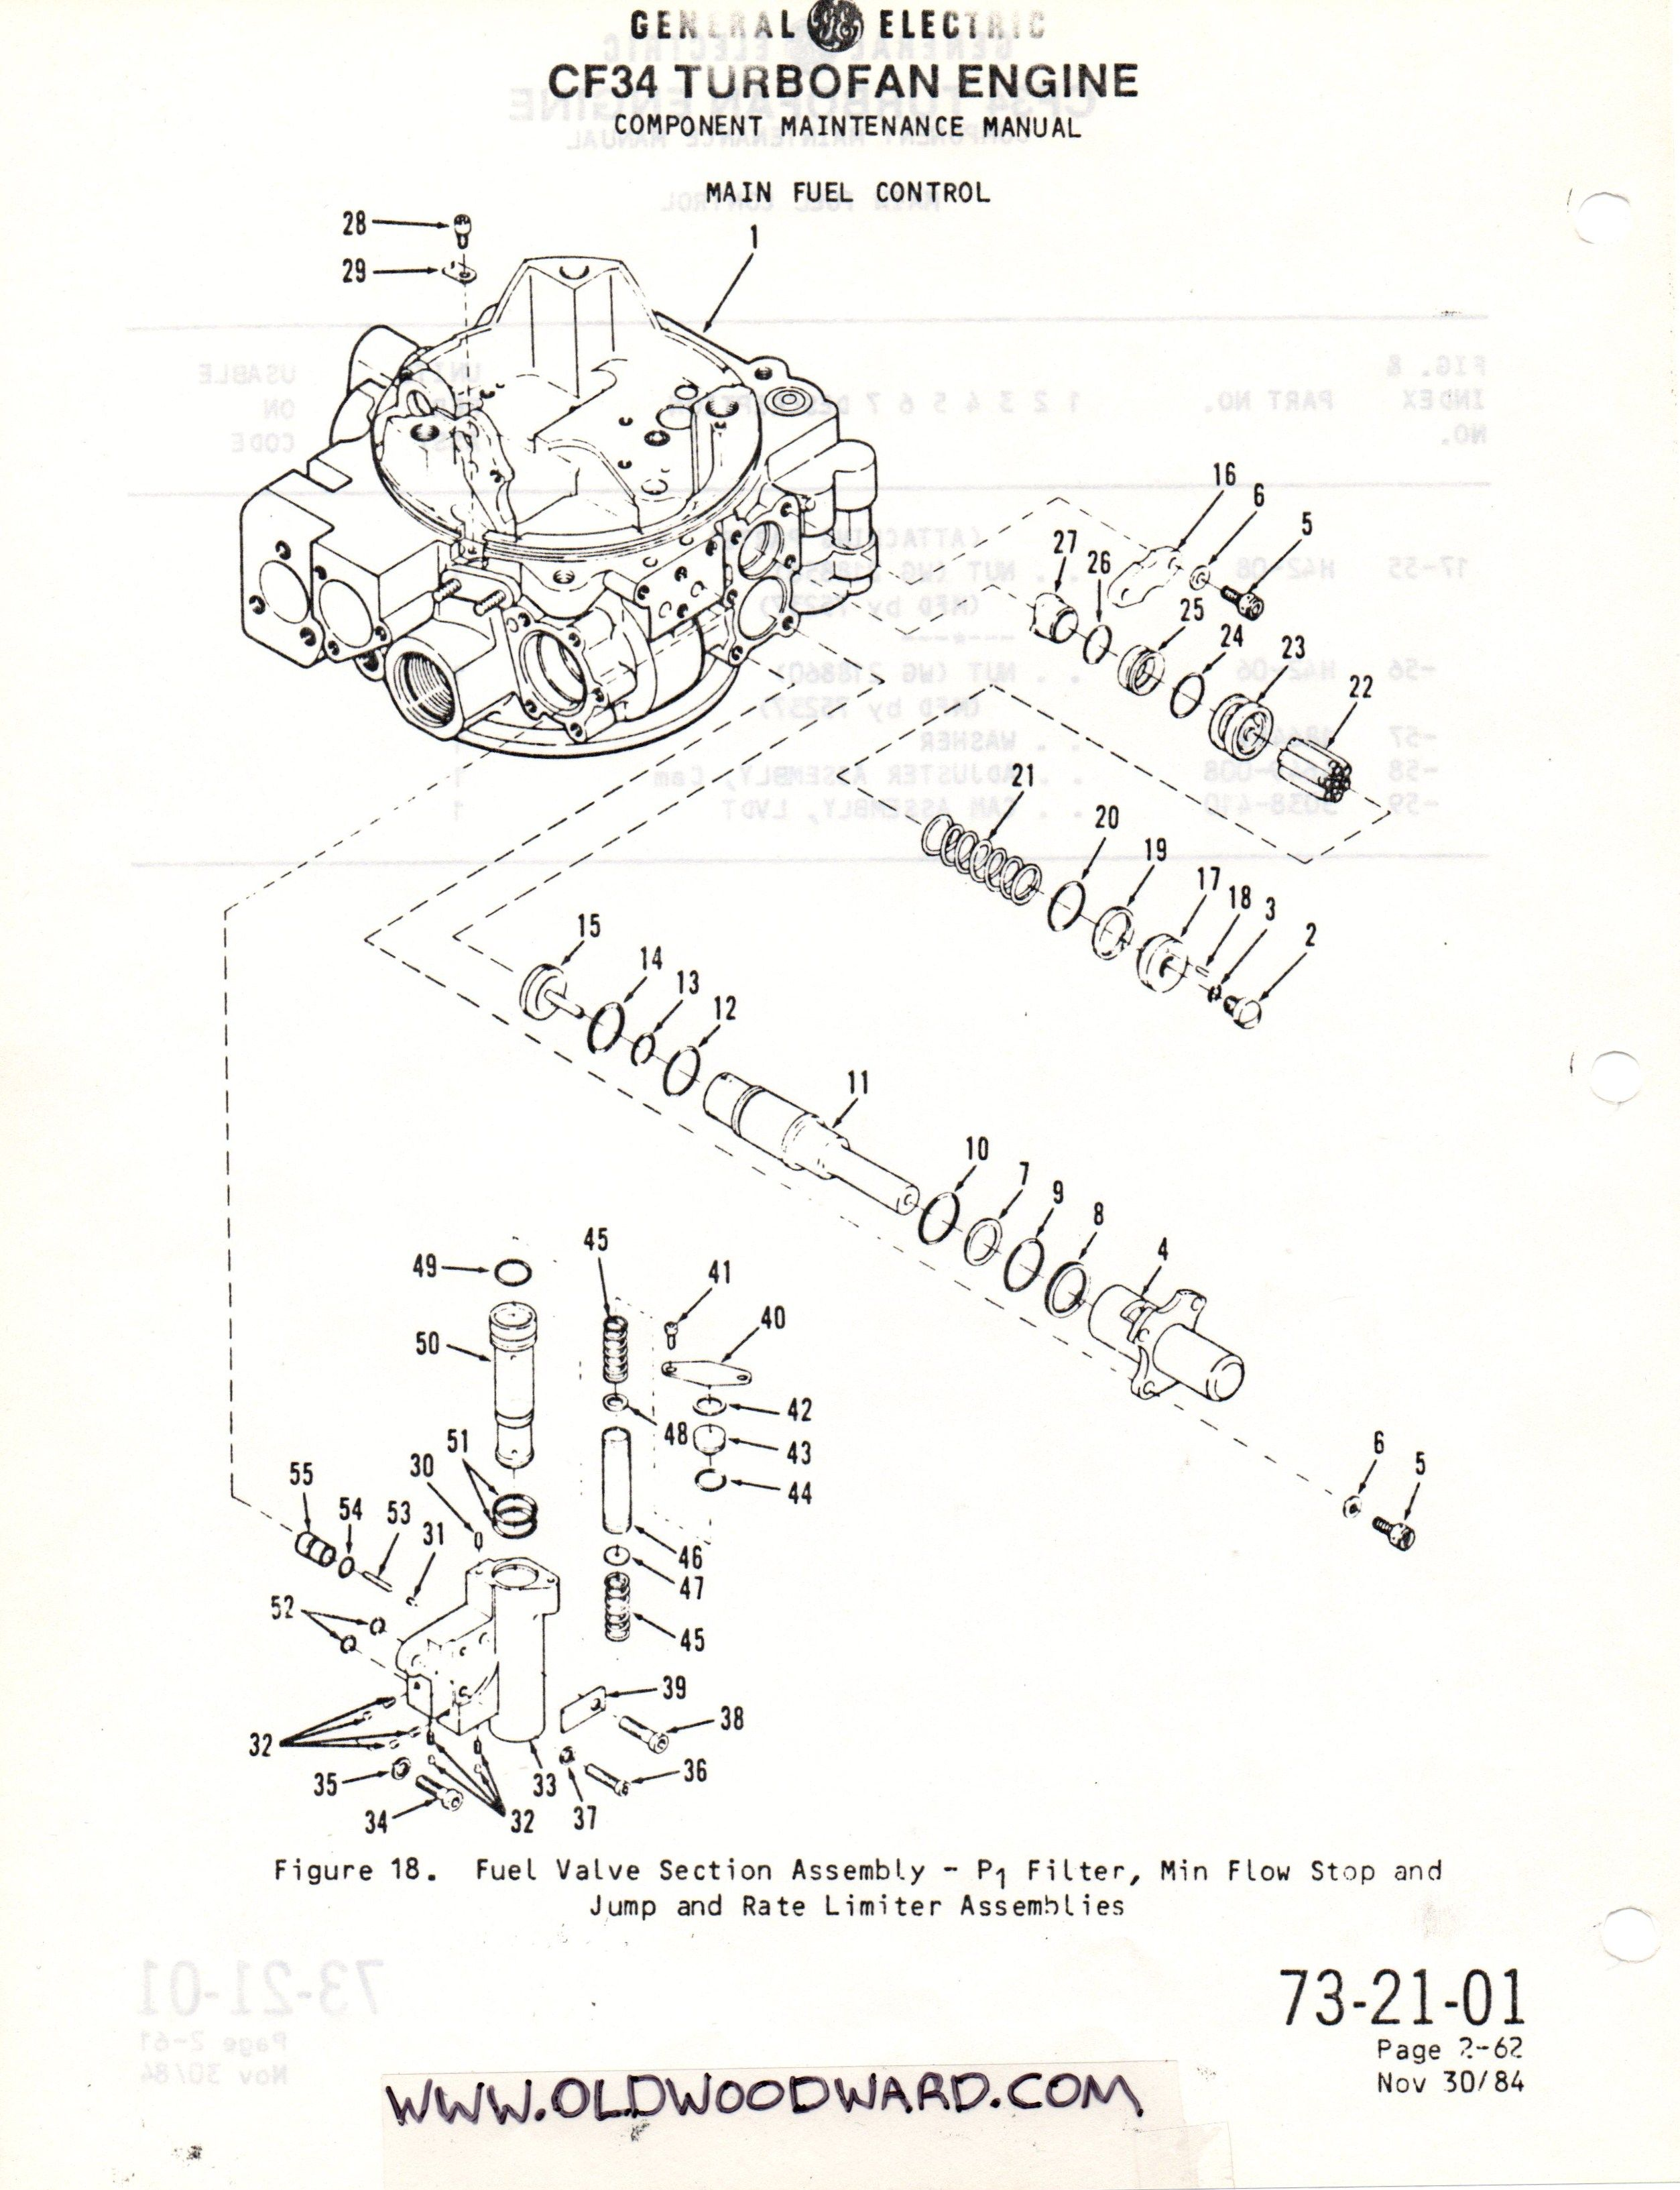 medium resolution of woodward governor company main engine control component training manual schematic drawing woodward governor